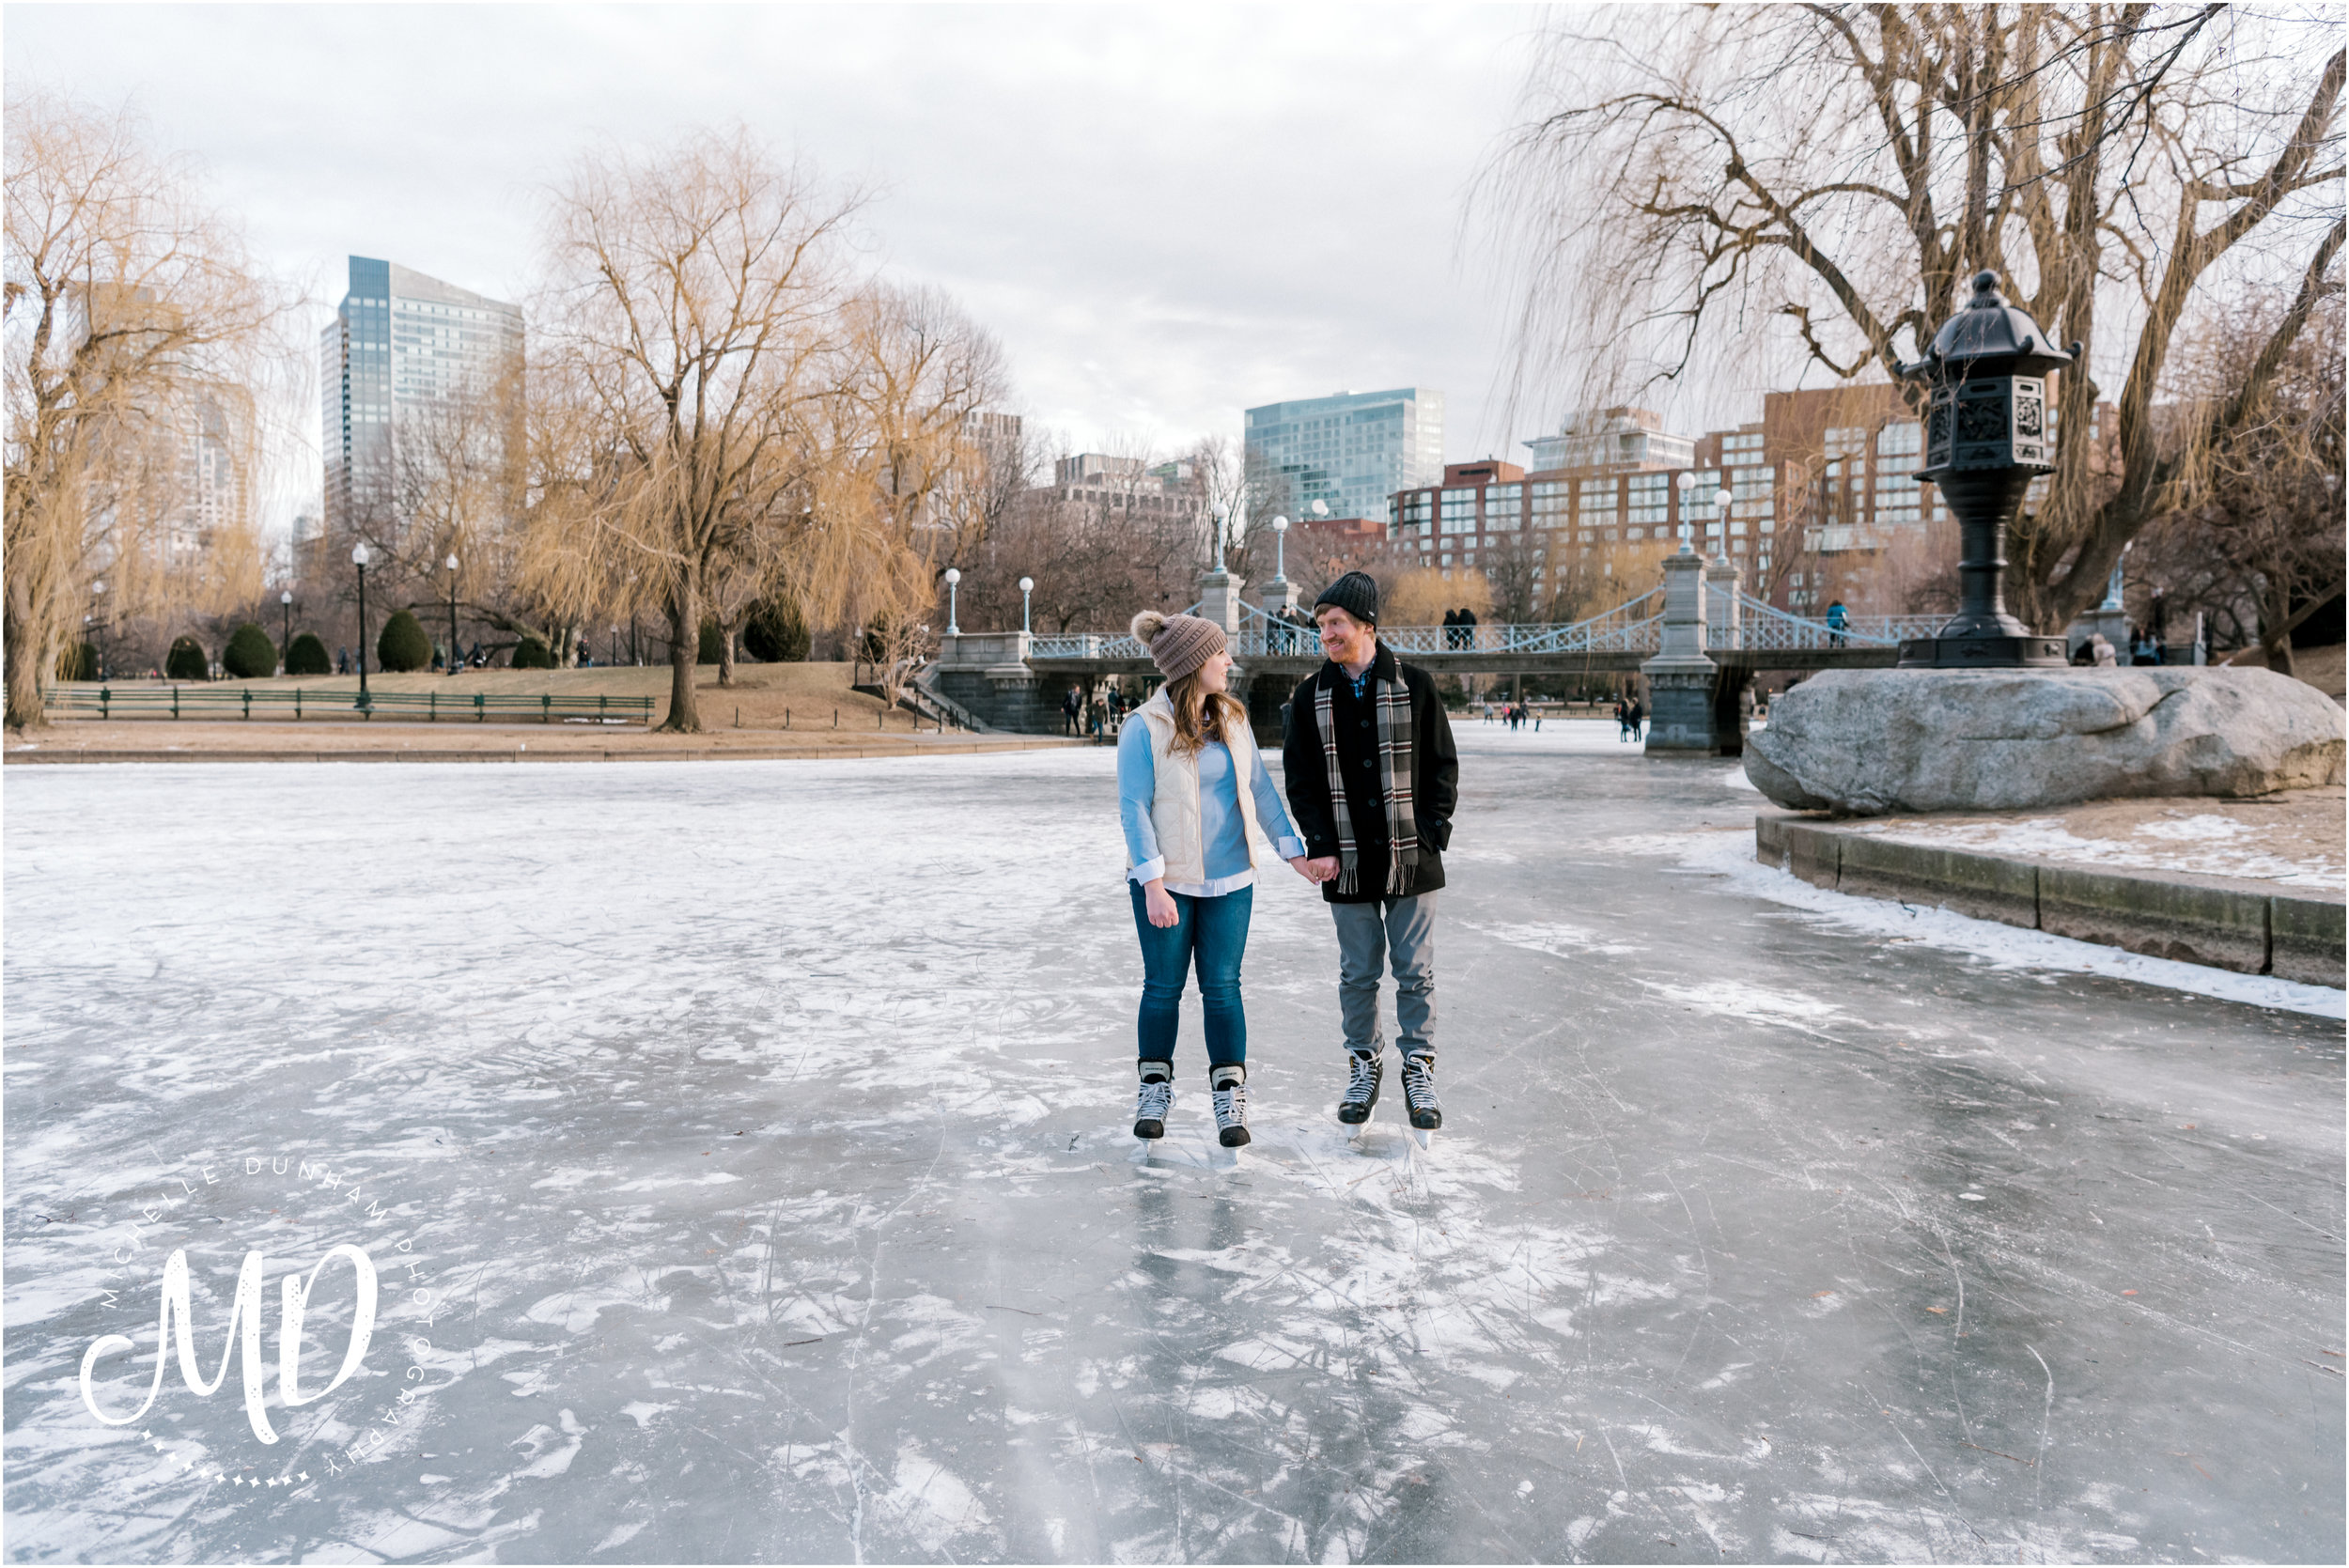 Boston-Public-Garden-Winter-Engagement-Ice-Skating-6.jpg